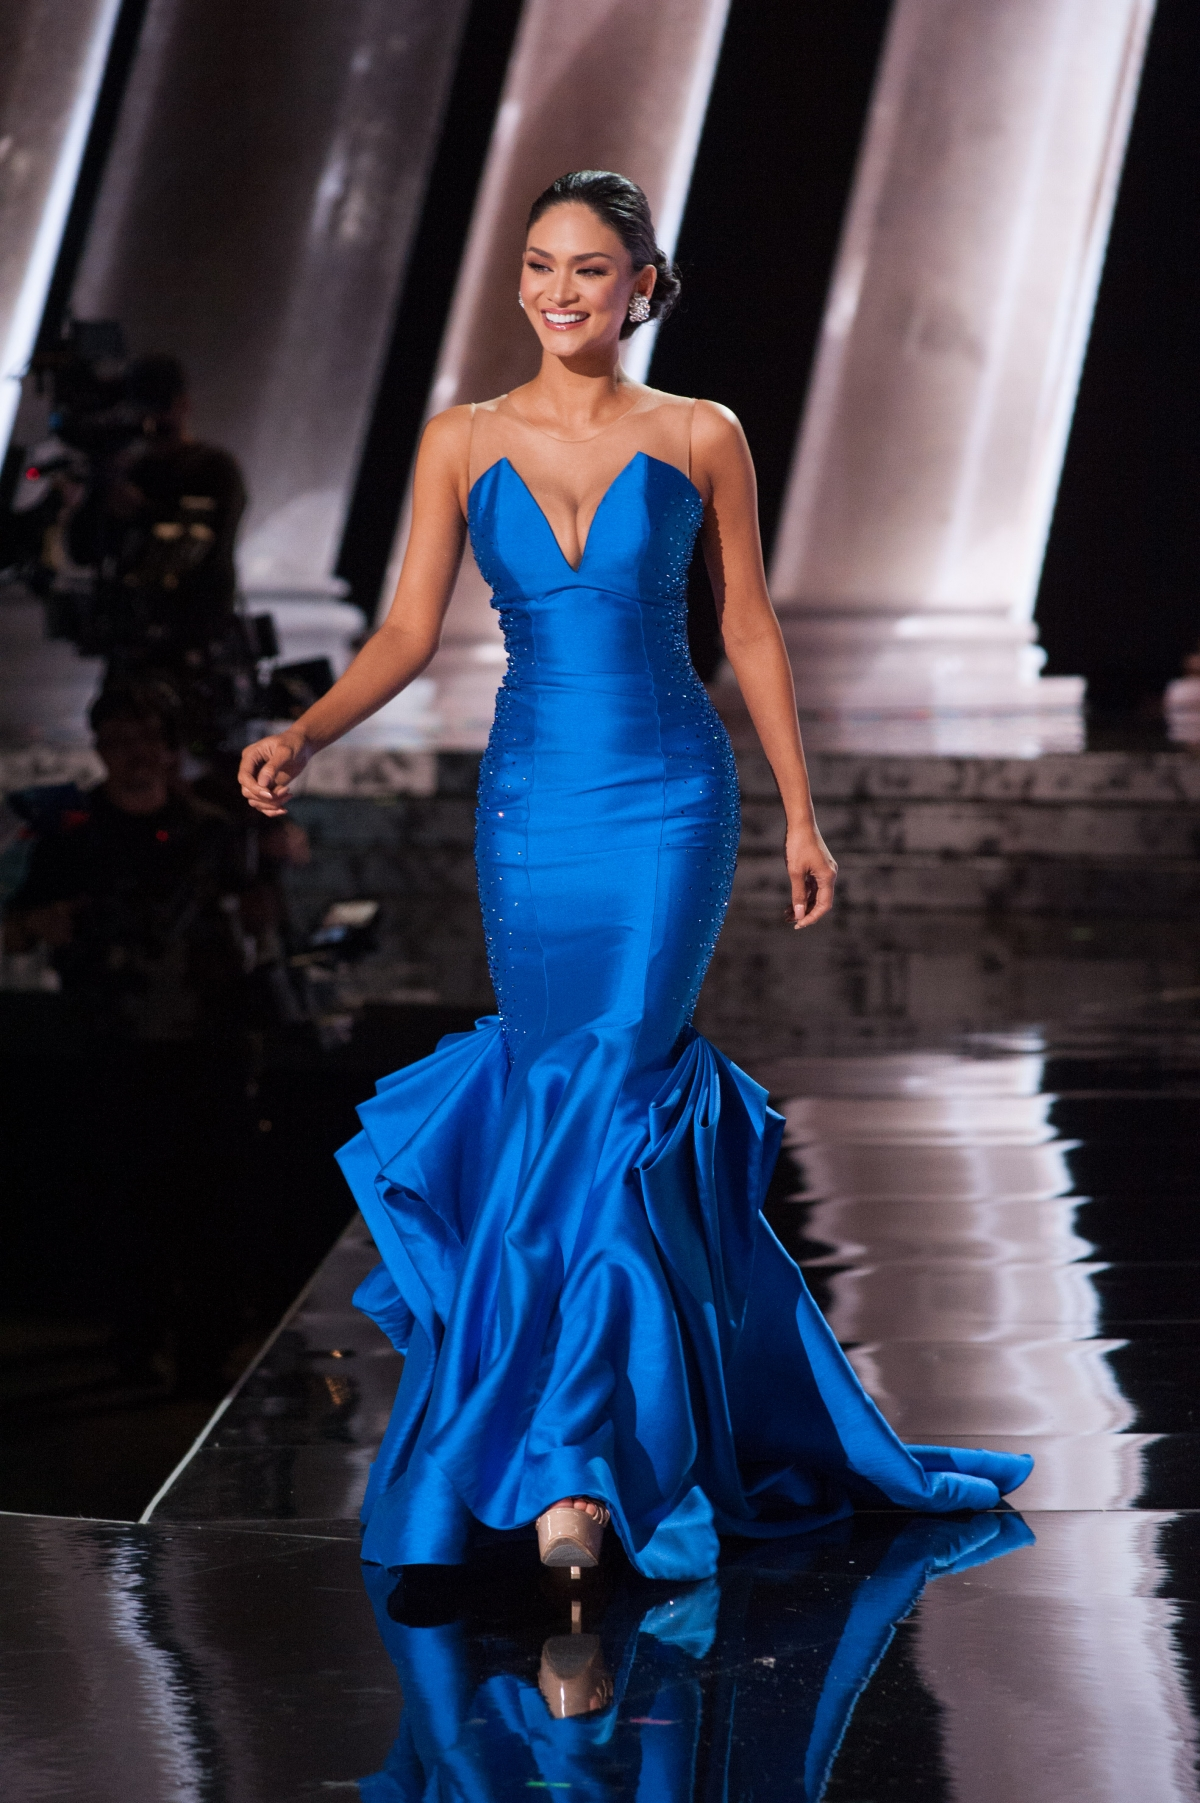 ♔ The Official Thread of MISS UNIVERSE® 2015 Pia Alonzo Wurtzbach of Philippines ♔  Miss-universe-2015-pia-alonzo-wurtzbach-philippines